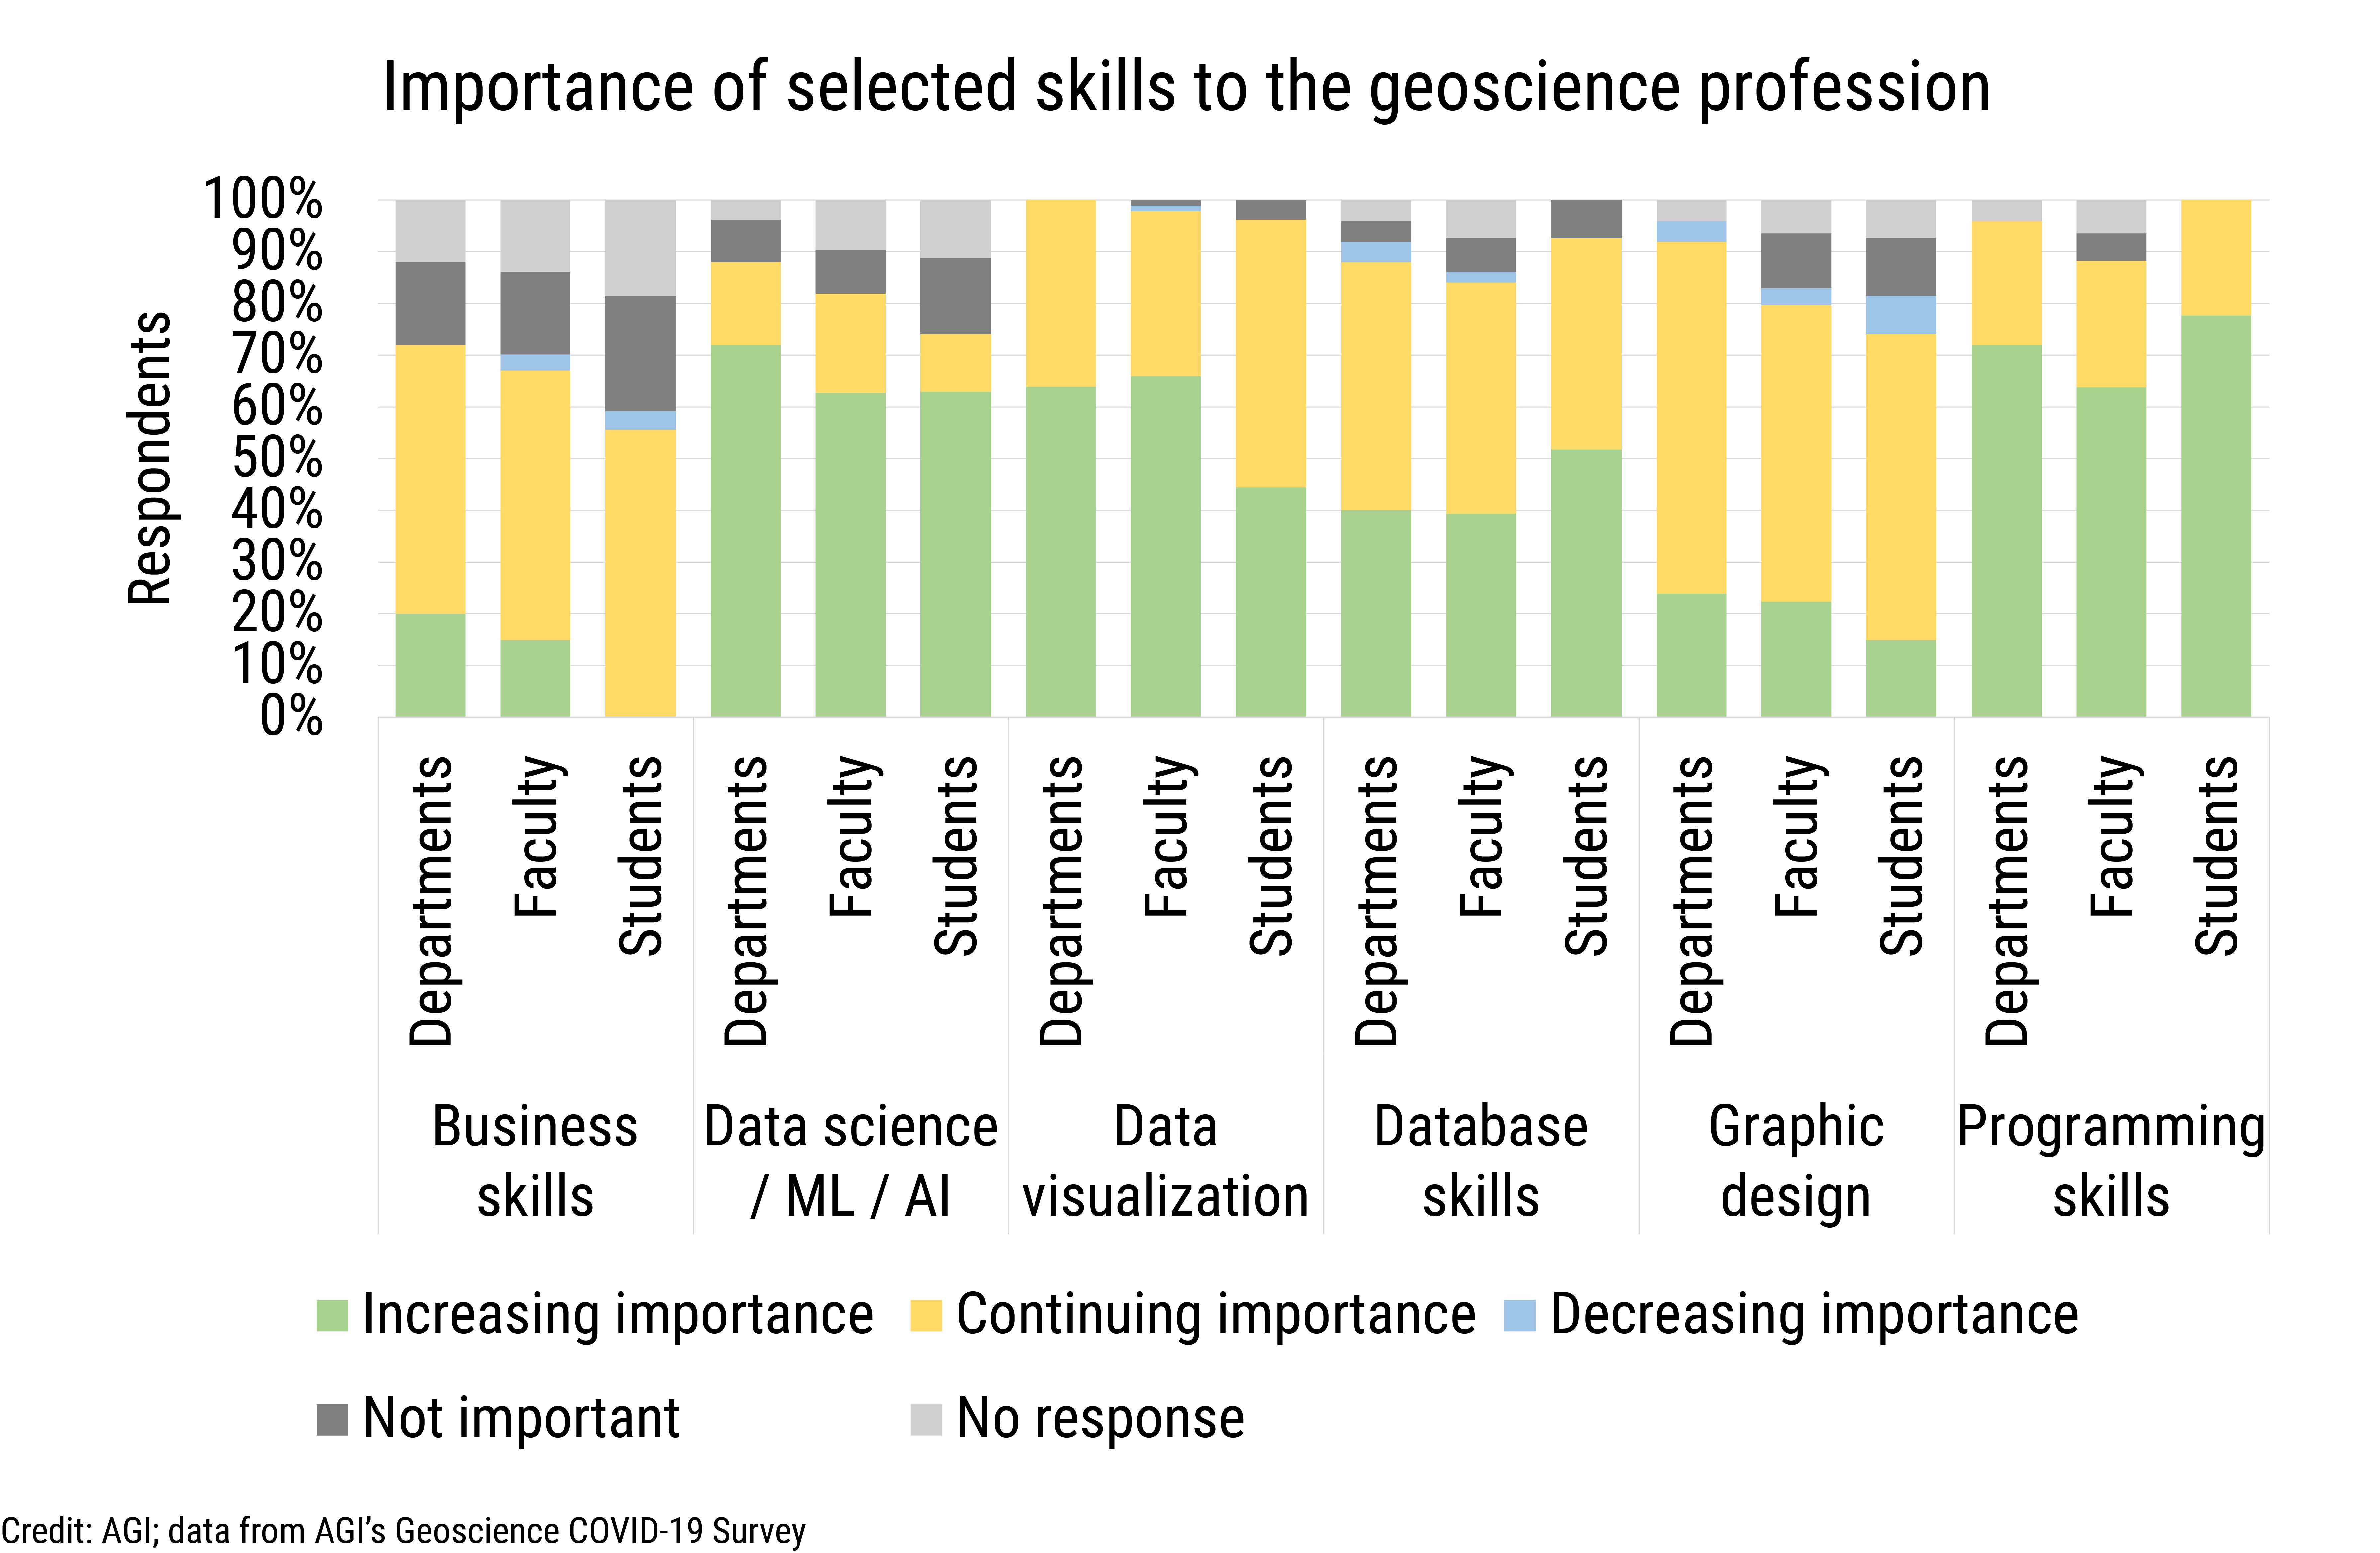 DB_2021-017 chart 01: Importance of selected skills to the geoscience profession (Credit: AGI; data from AGI's Geoscience COVID-19 Survey)